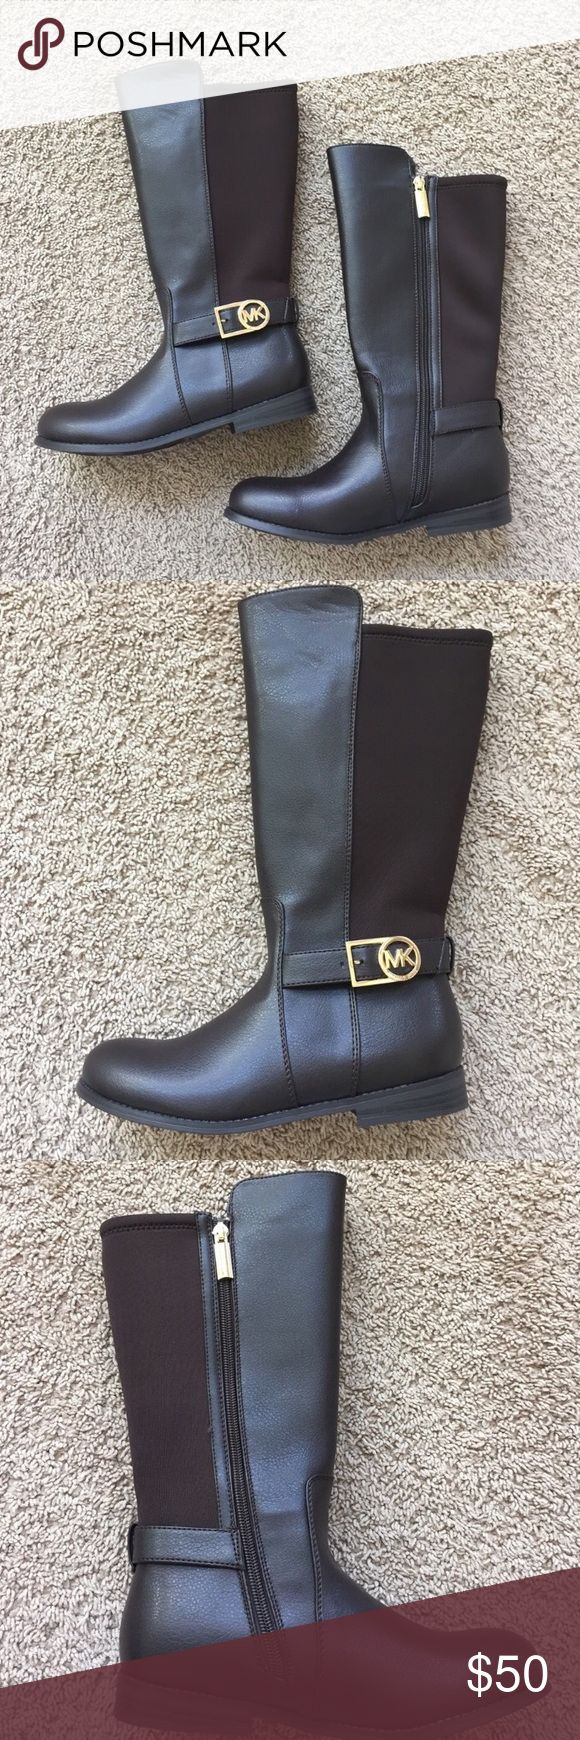 MK Boots Great boots that will match everything. Chocolate brown color. These have never been worn but they are new and don't have the tag or box. Michael Kors Shoes Boots